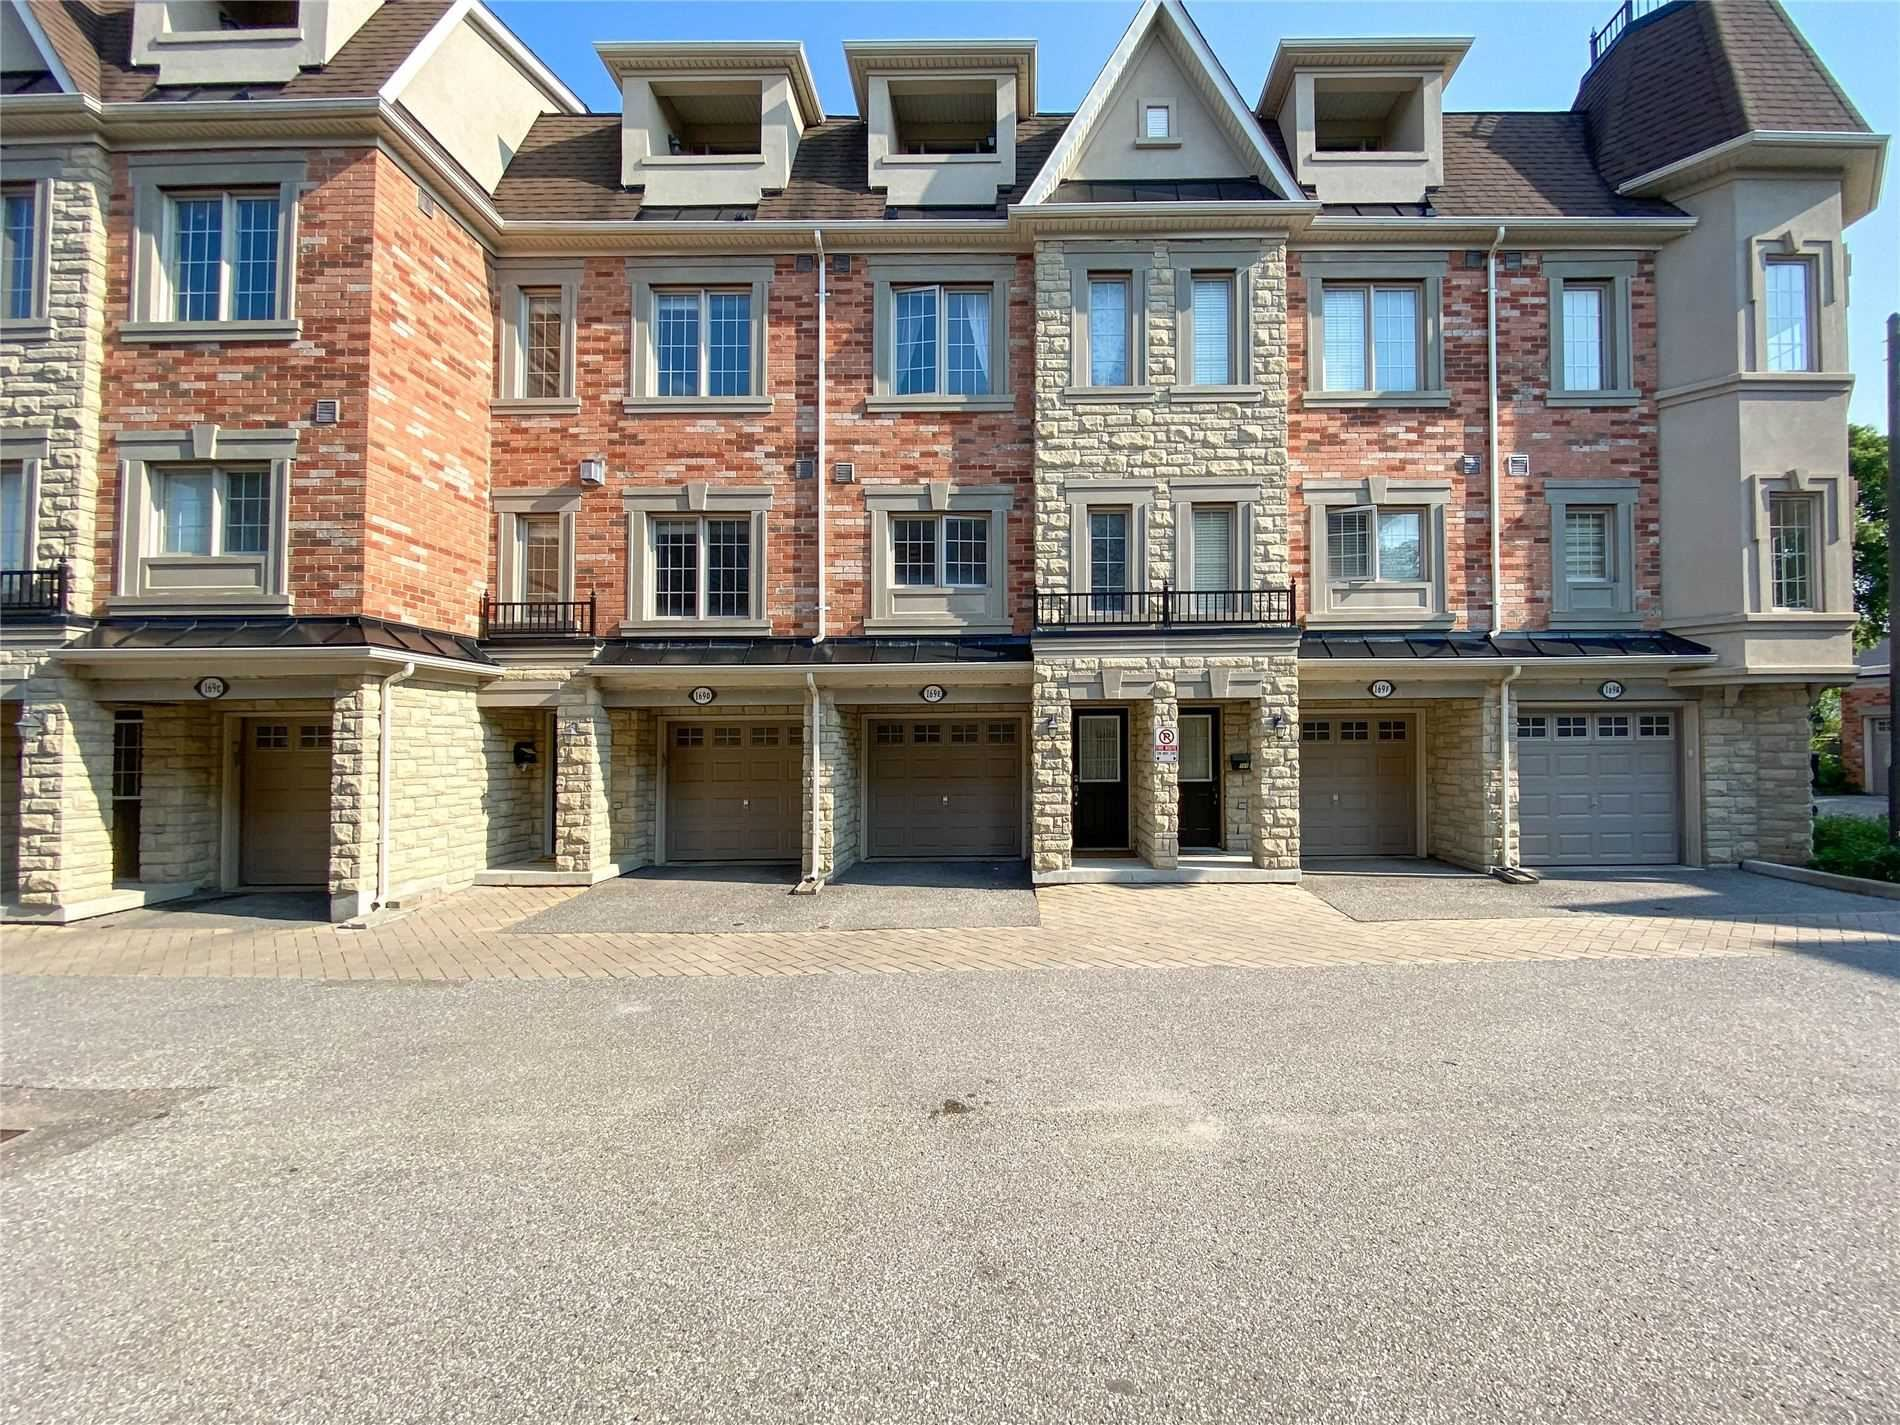 Photo of 169E Finch Ave E, Toronto, ON M2N4R8 (MLS # C5326189)